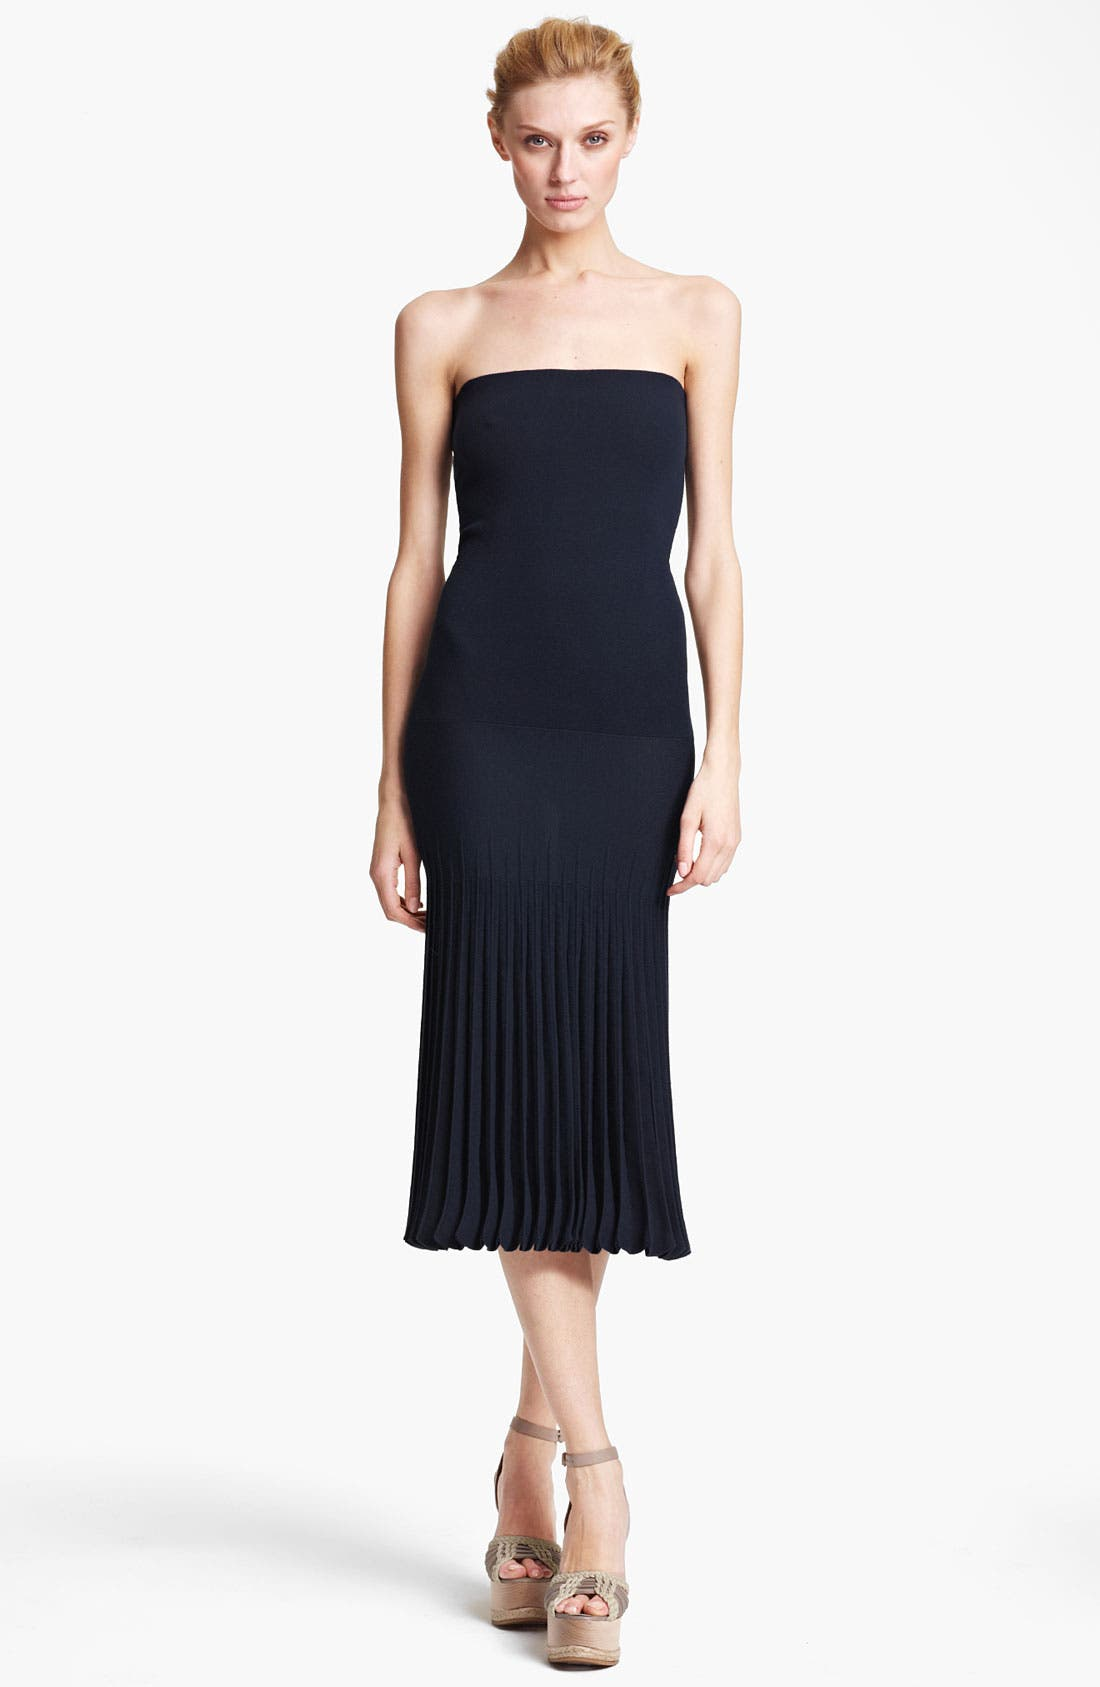 Alternate Image 1 Selected - Donna Karan Collection 'Infinity' Strapless Stretch Knit Dress